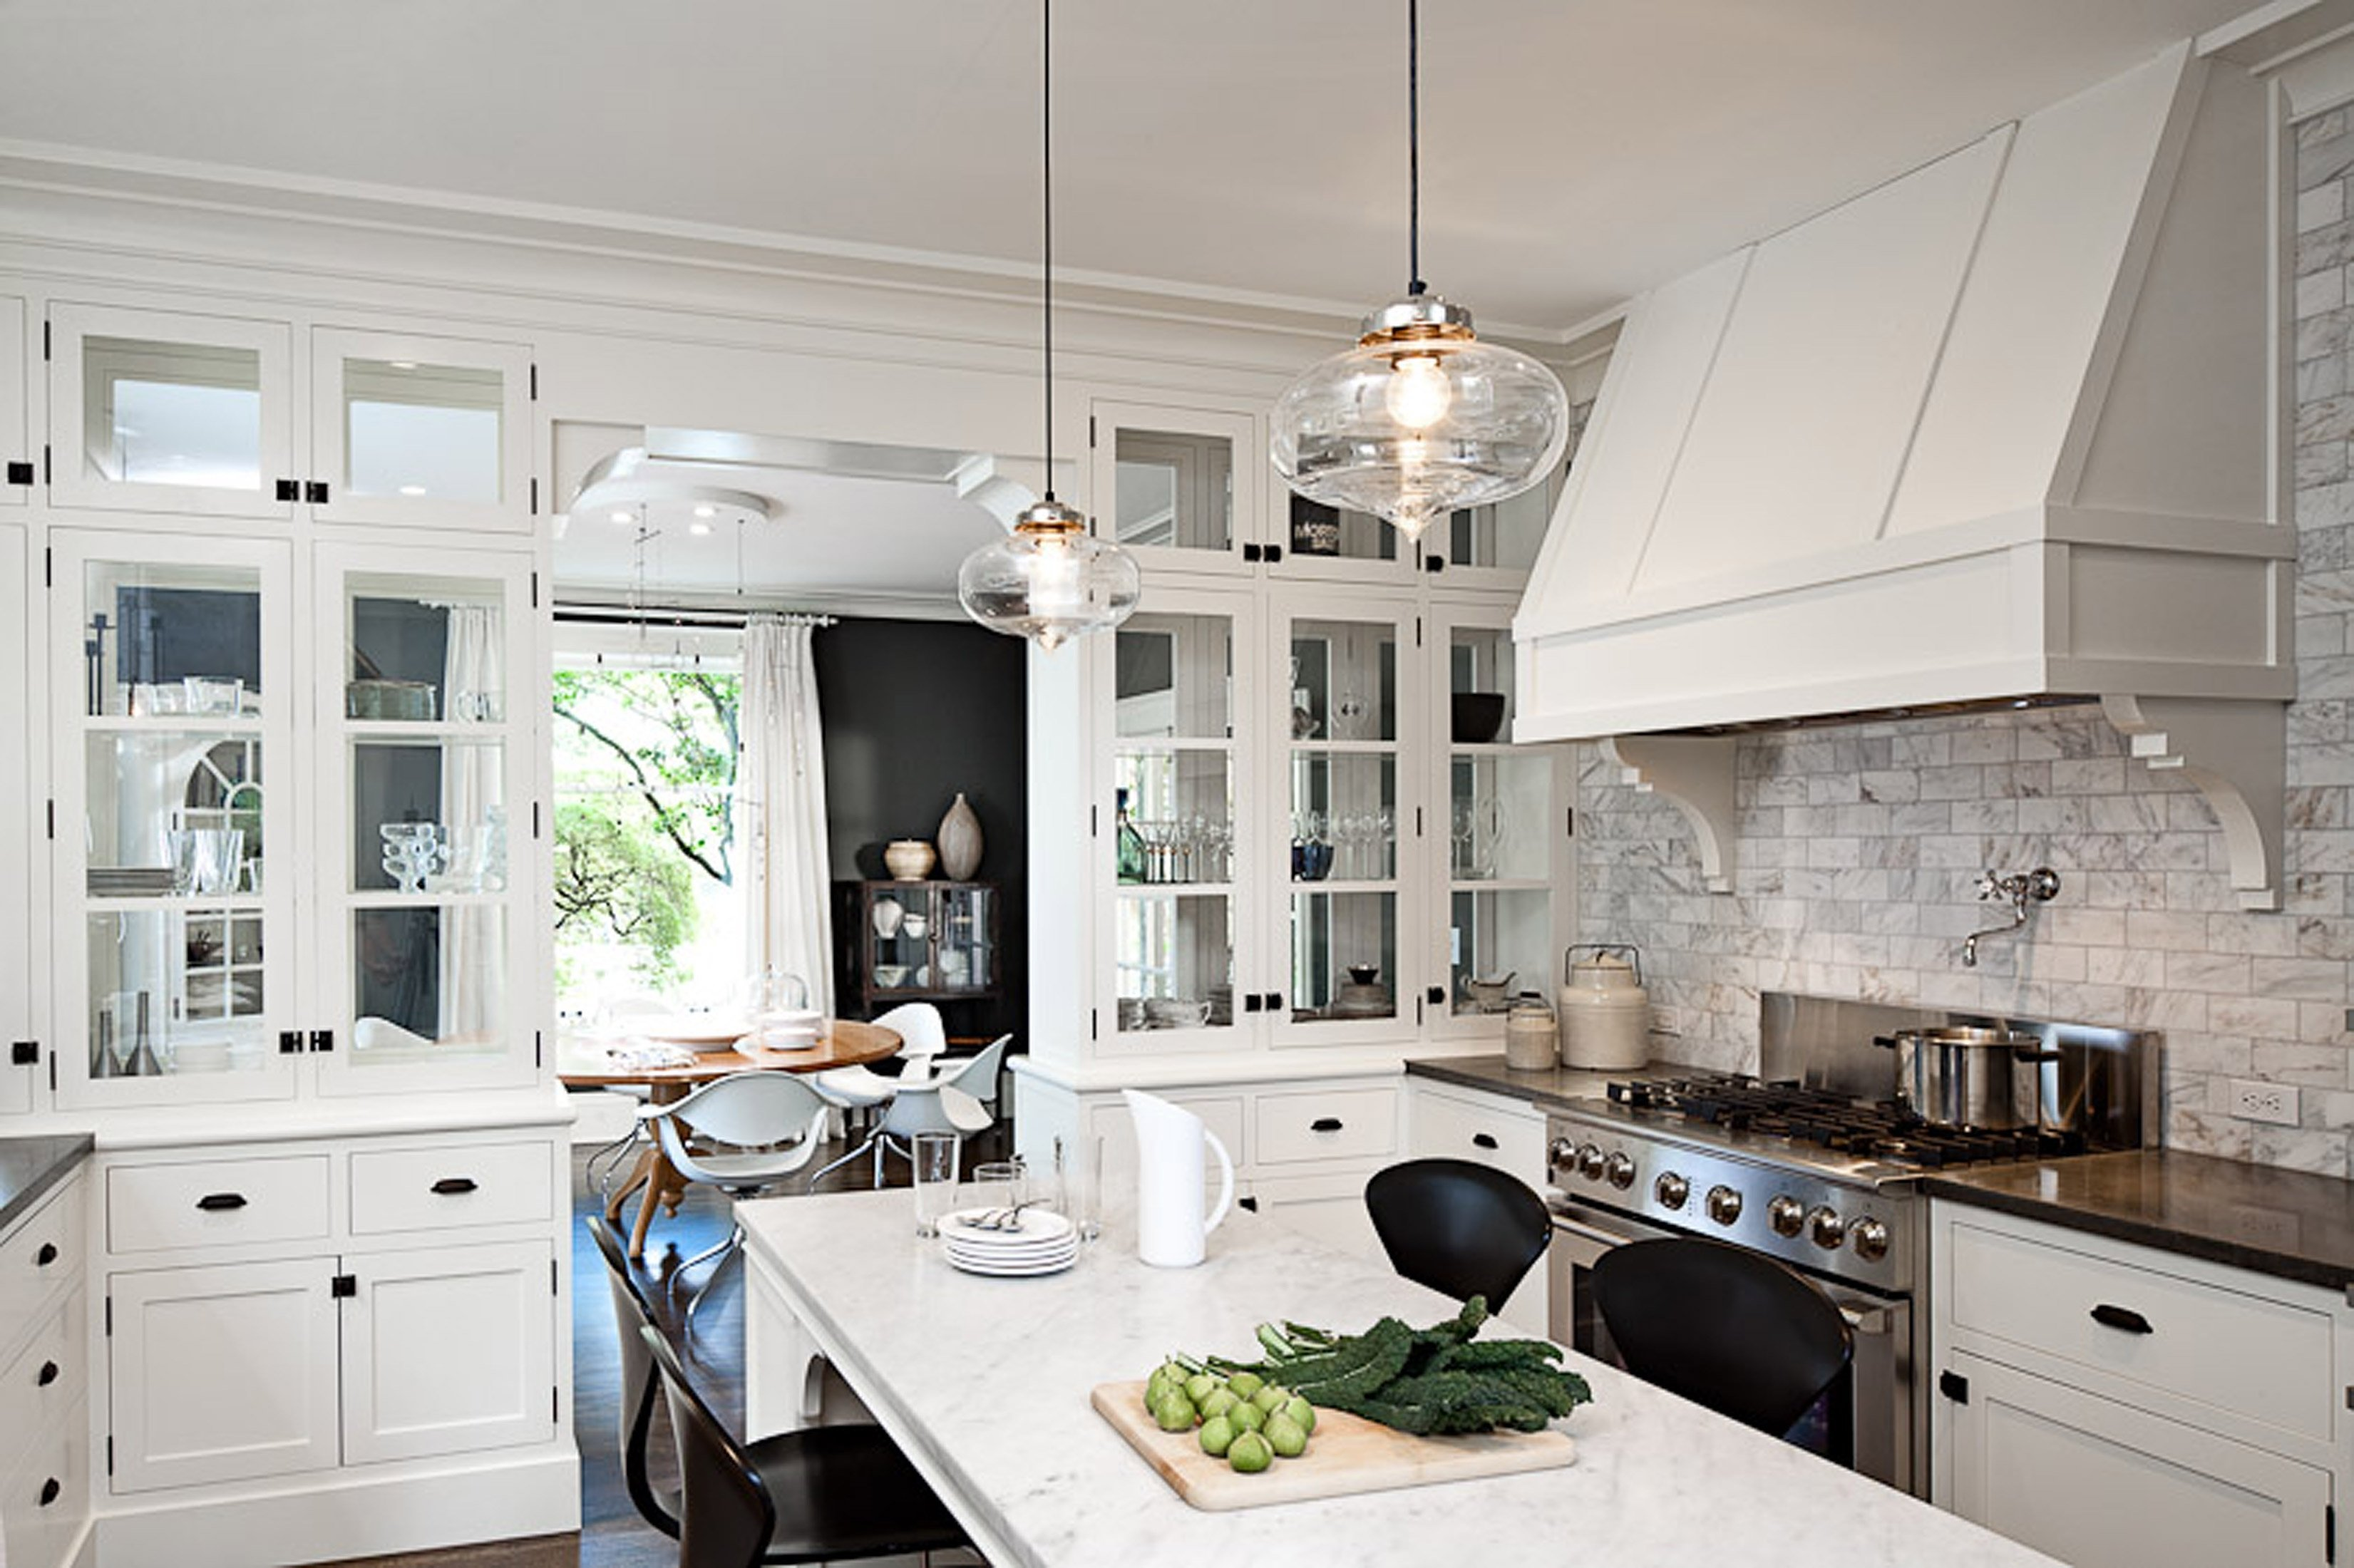 10 Most Recommended Kitchen Island Pendant Lighting Ideas kitchen islands over kitchen sink lighting island pendant lights